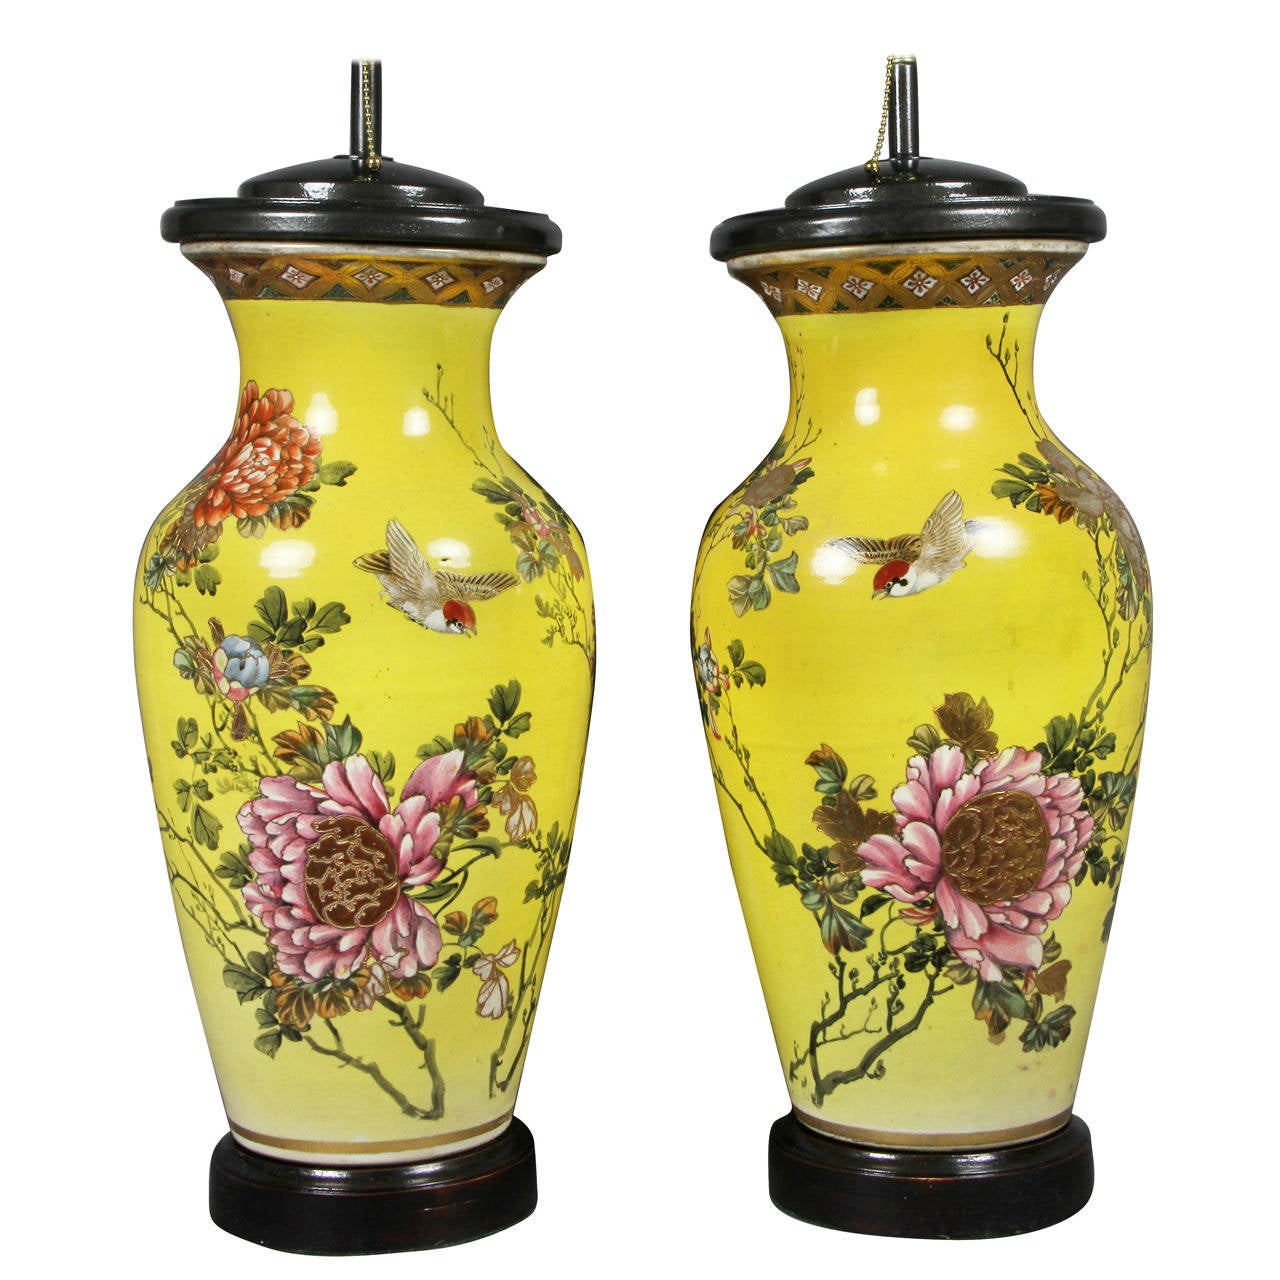 Pair of Japanese Pottery Vases Mounted as Lamps